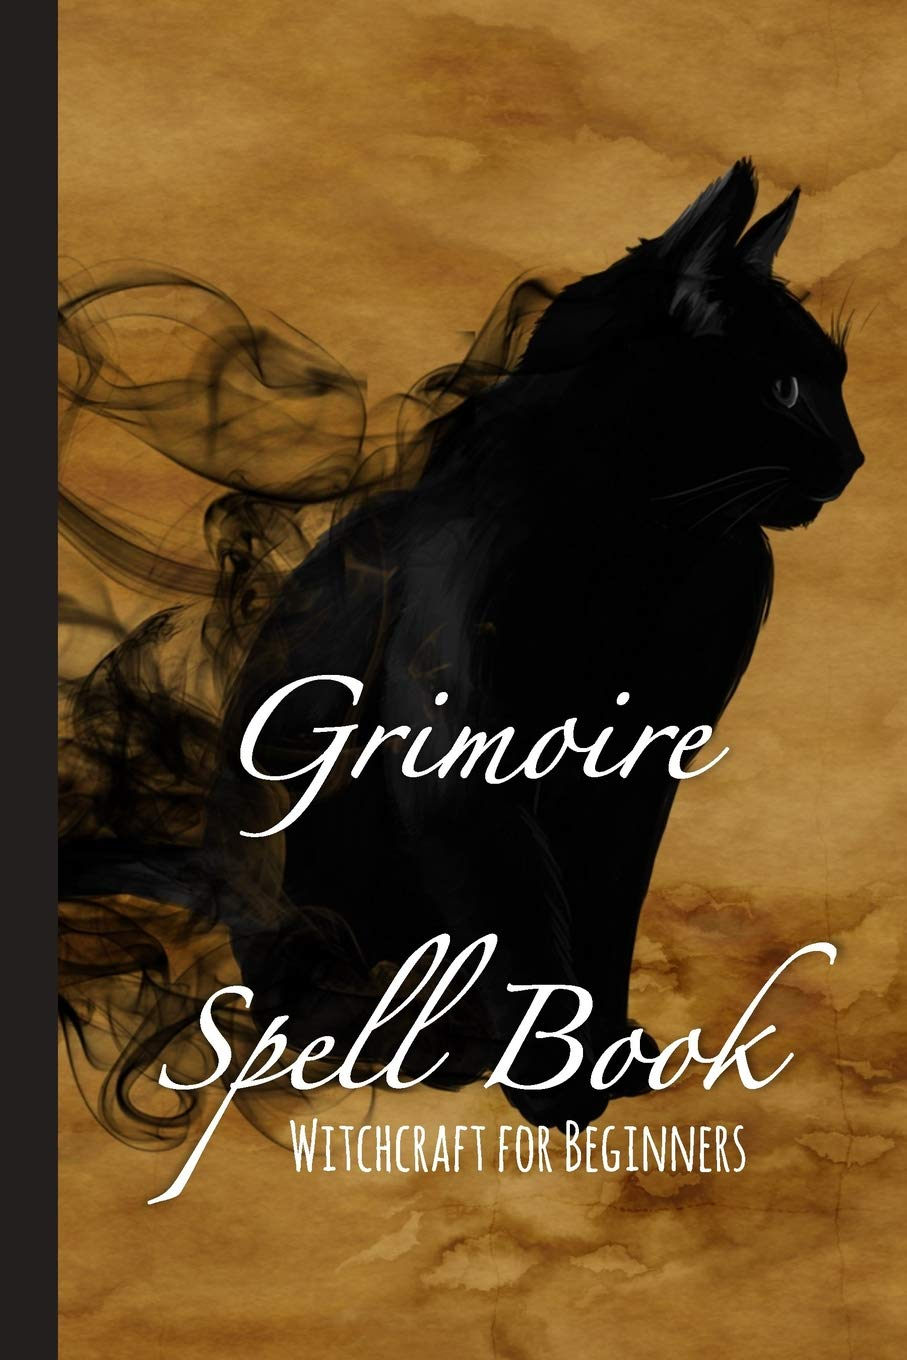 Grimoire Spell Book - Witchcraft For Beginners: Book of